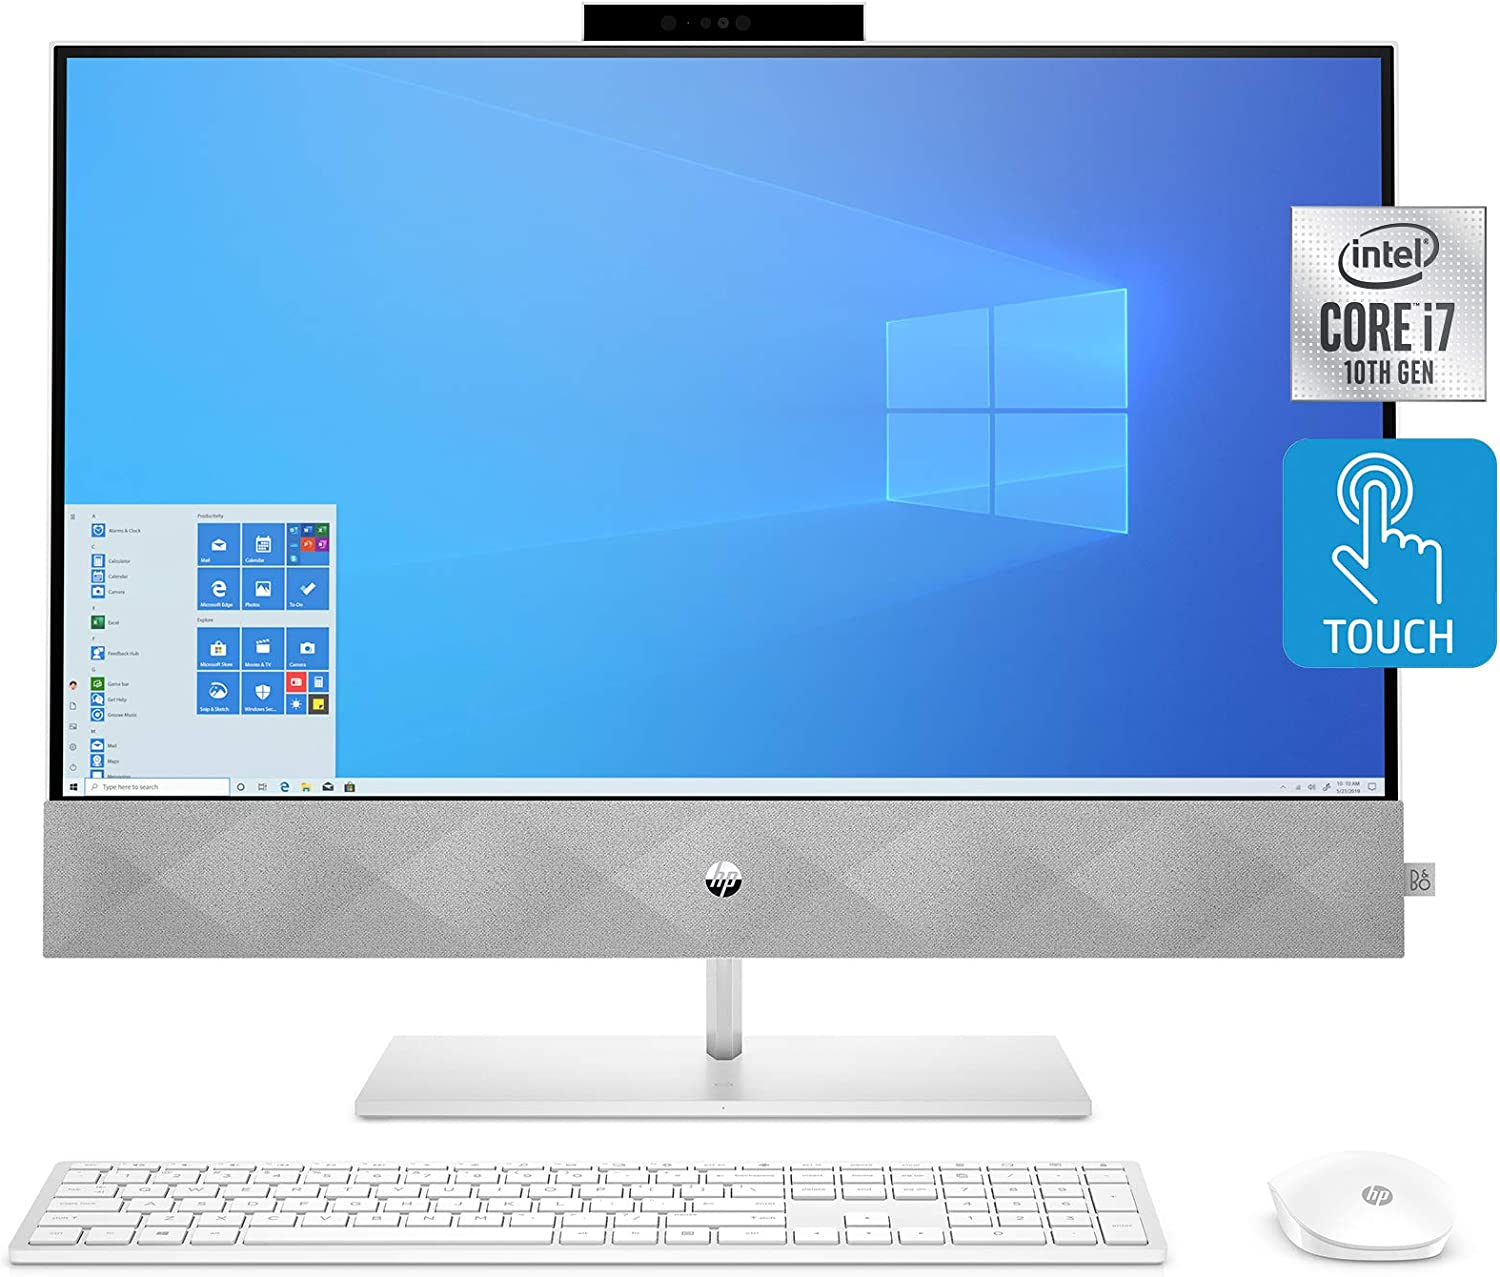 HP Pavilion All-in-One 27-inch Computer, Intel Core i7-10700T, Intel UHD Graphics 630, 16 GB RAM, 512 GB SSD, 1 TB HDD, Windows 10 (27-d0072, Snowflake White)